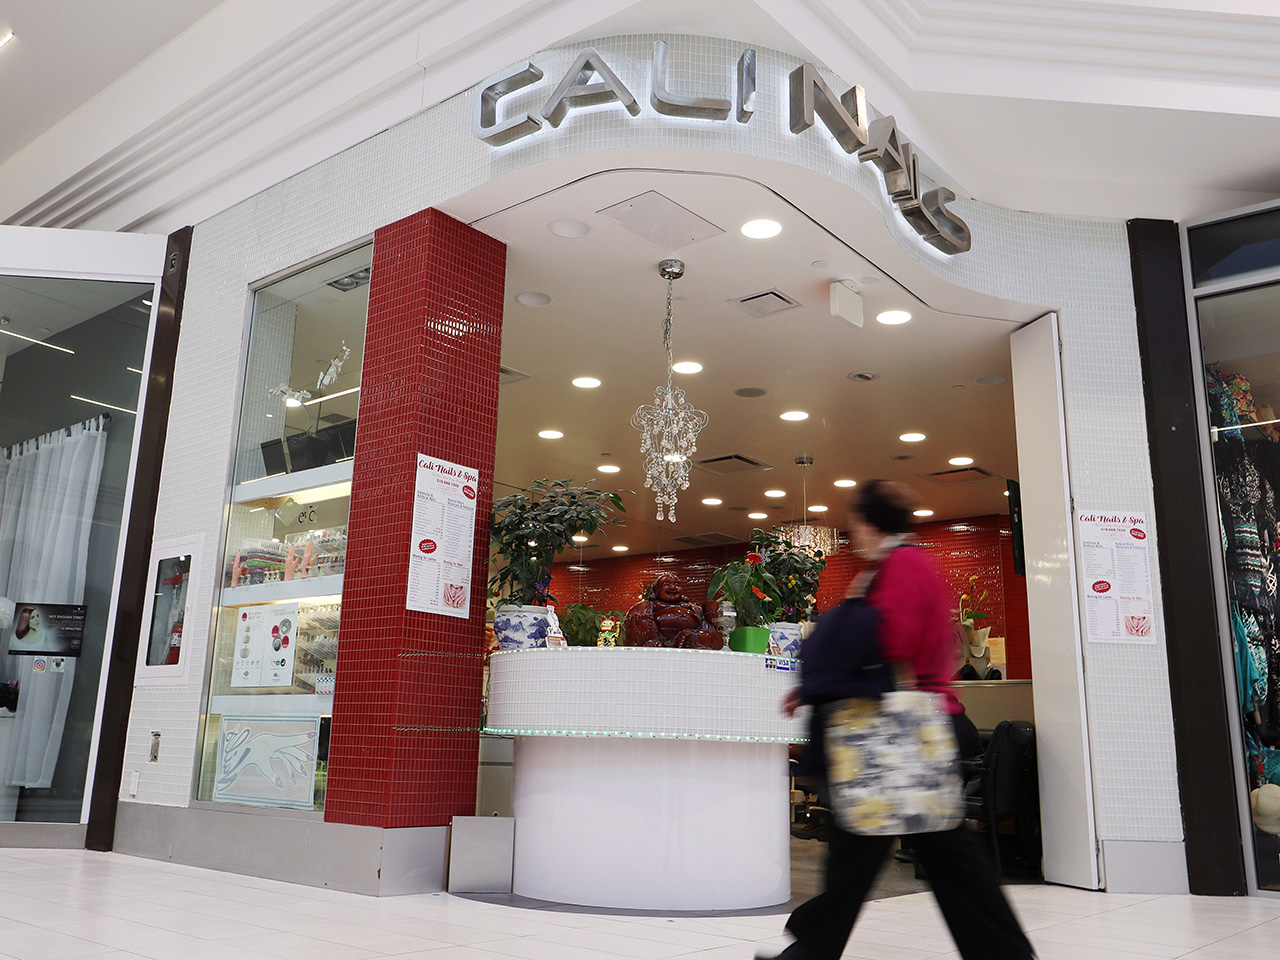 The Middlesex-London Health Unit is advising clients of Cali Nails at White Oaks Mall in London, Ont. to consult their healthcare providers and discuss the risk of potential exposure to blood-borne infections, and to consider testing for Hepatitis B, C and HIV. Potential exposures may have occurred for clients who received services at the salon between May 4, 2017 and January 5, 2018. (Dave Chidley / The Canadian Press)